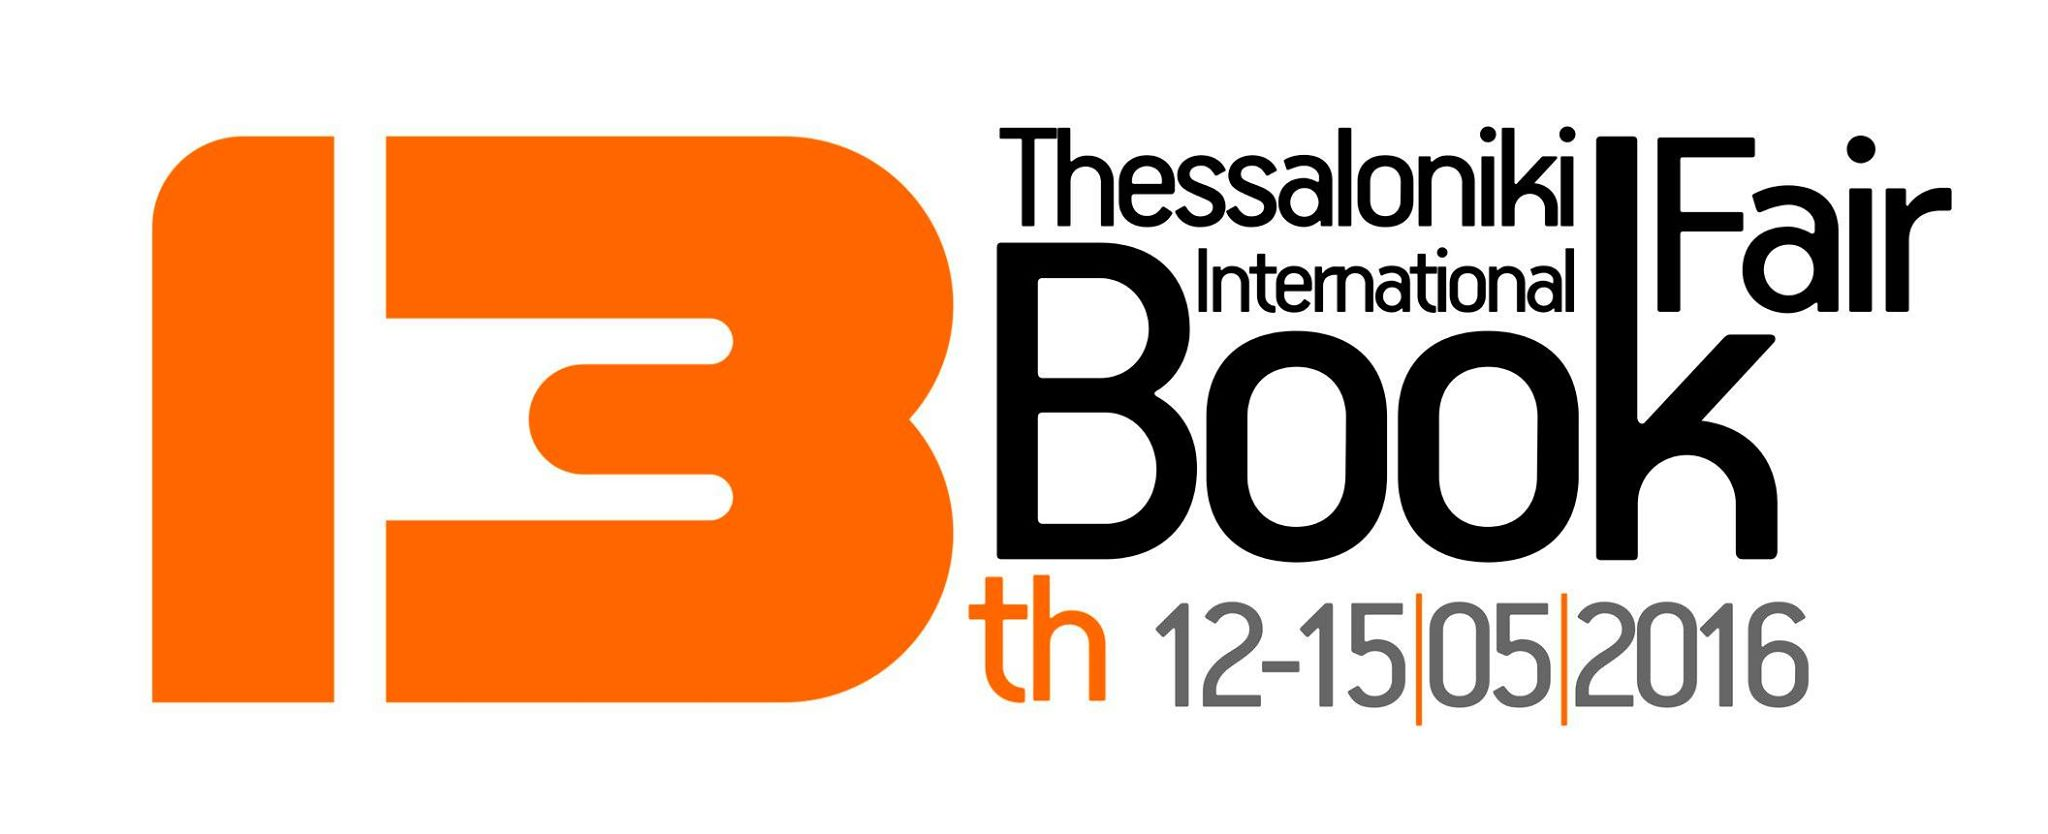 international book fair thessaloniki